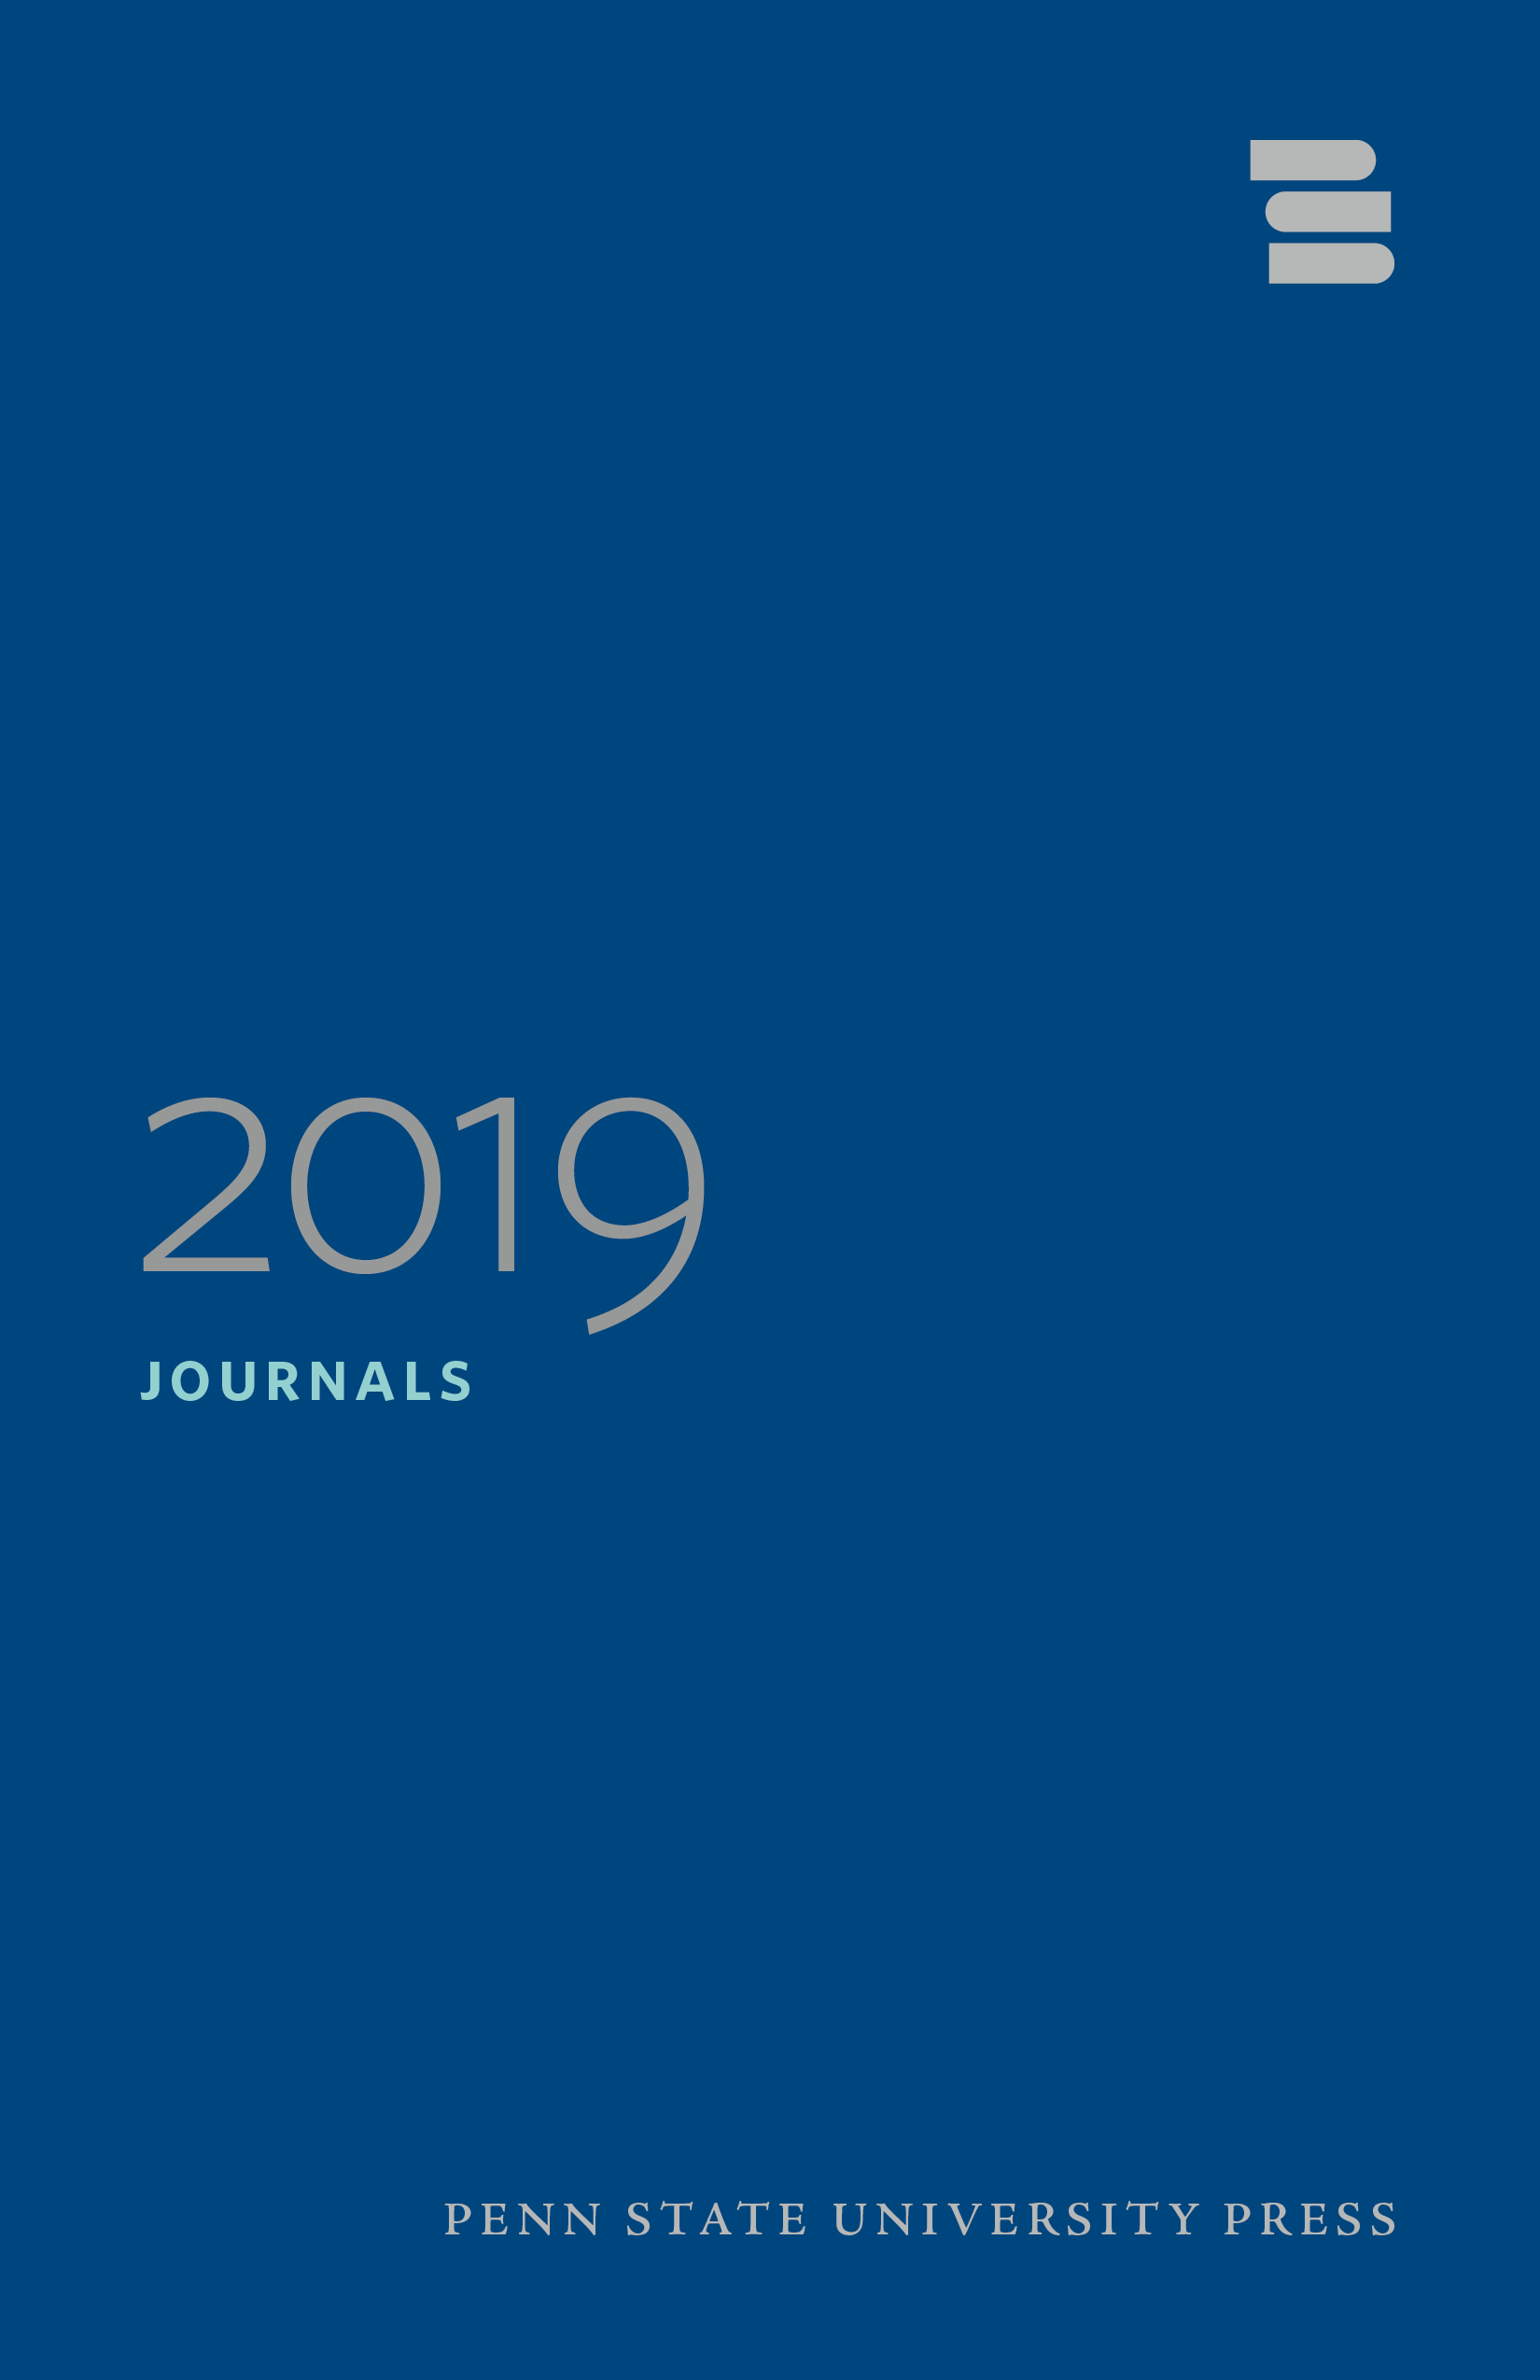 Cover for PSU Press Journals 2019